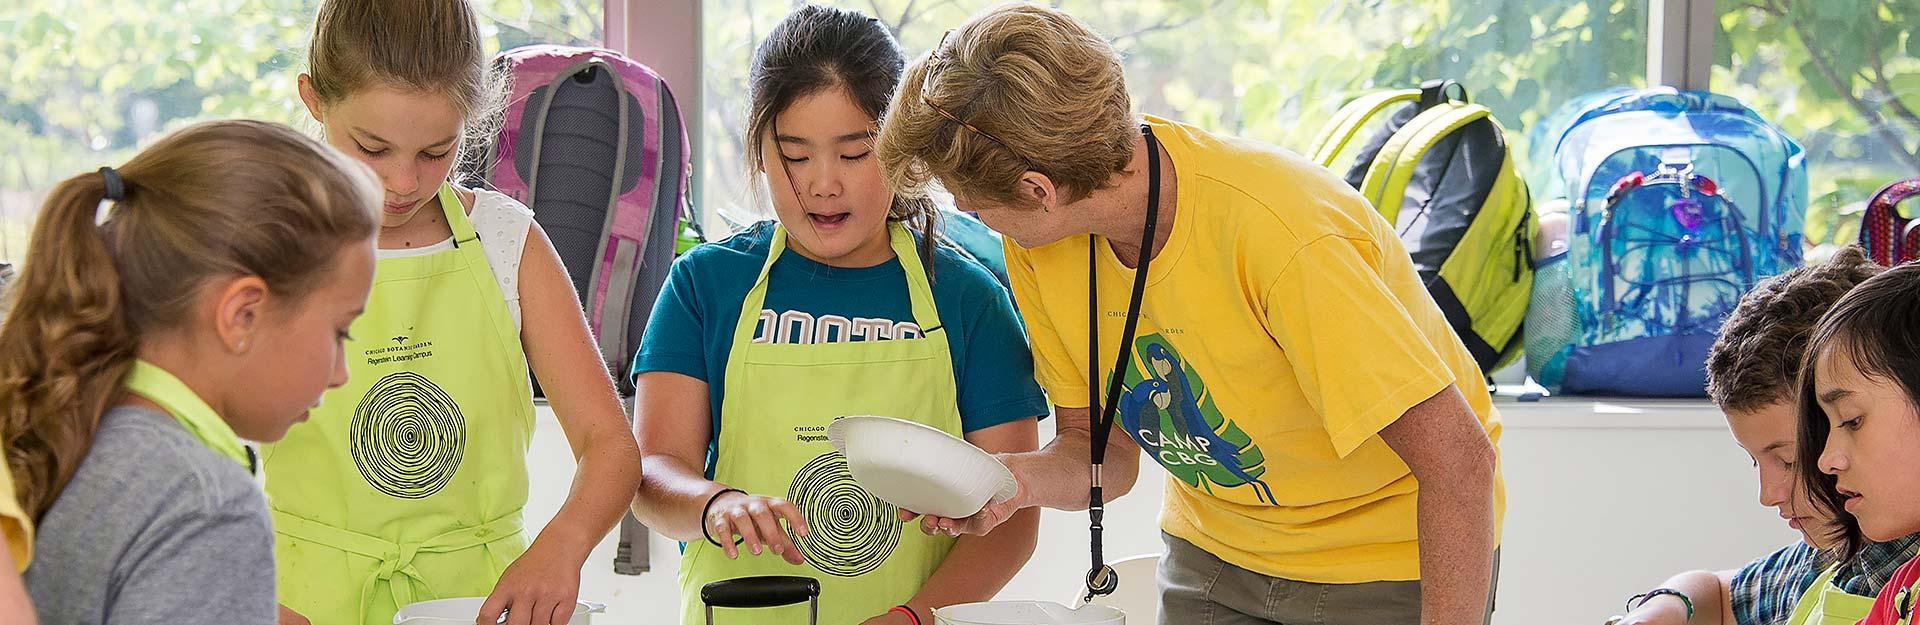 August Adventure Camp at Chicago Botanic Garden